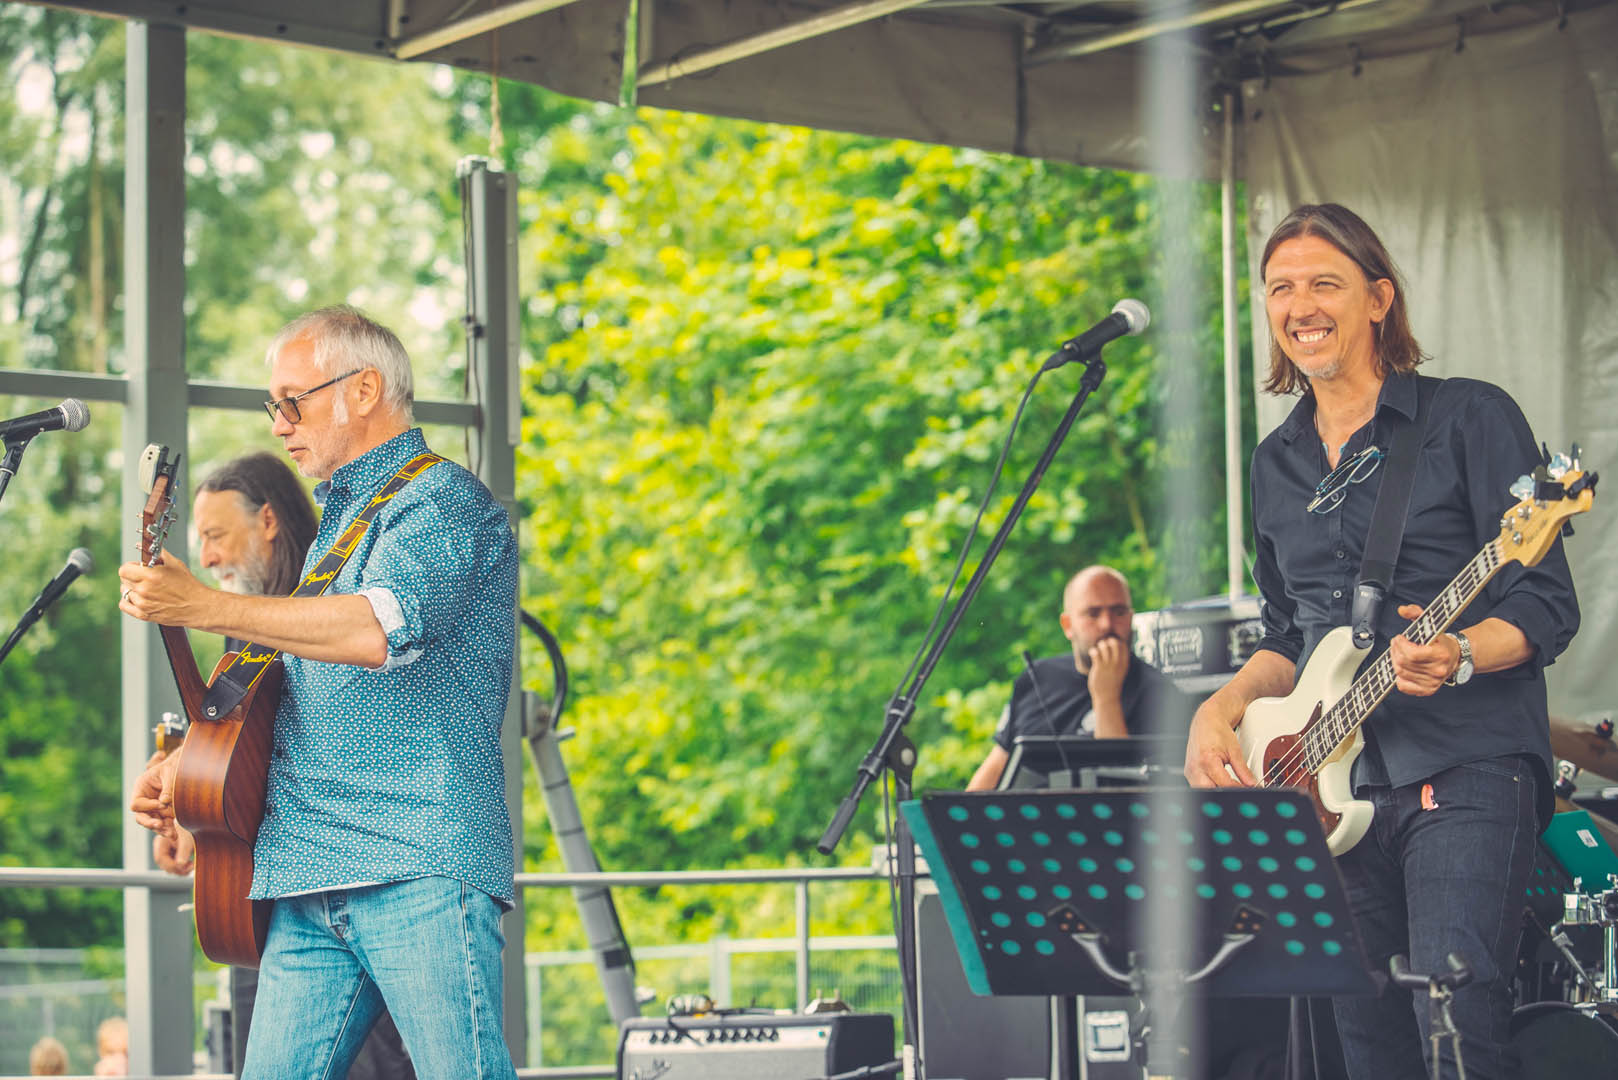 Stad Gent Picknick Event Laatste Show Band